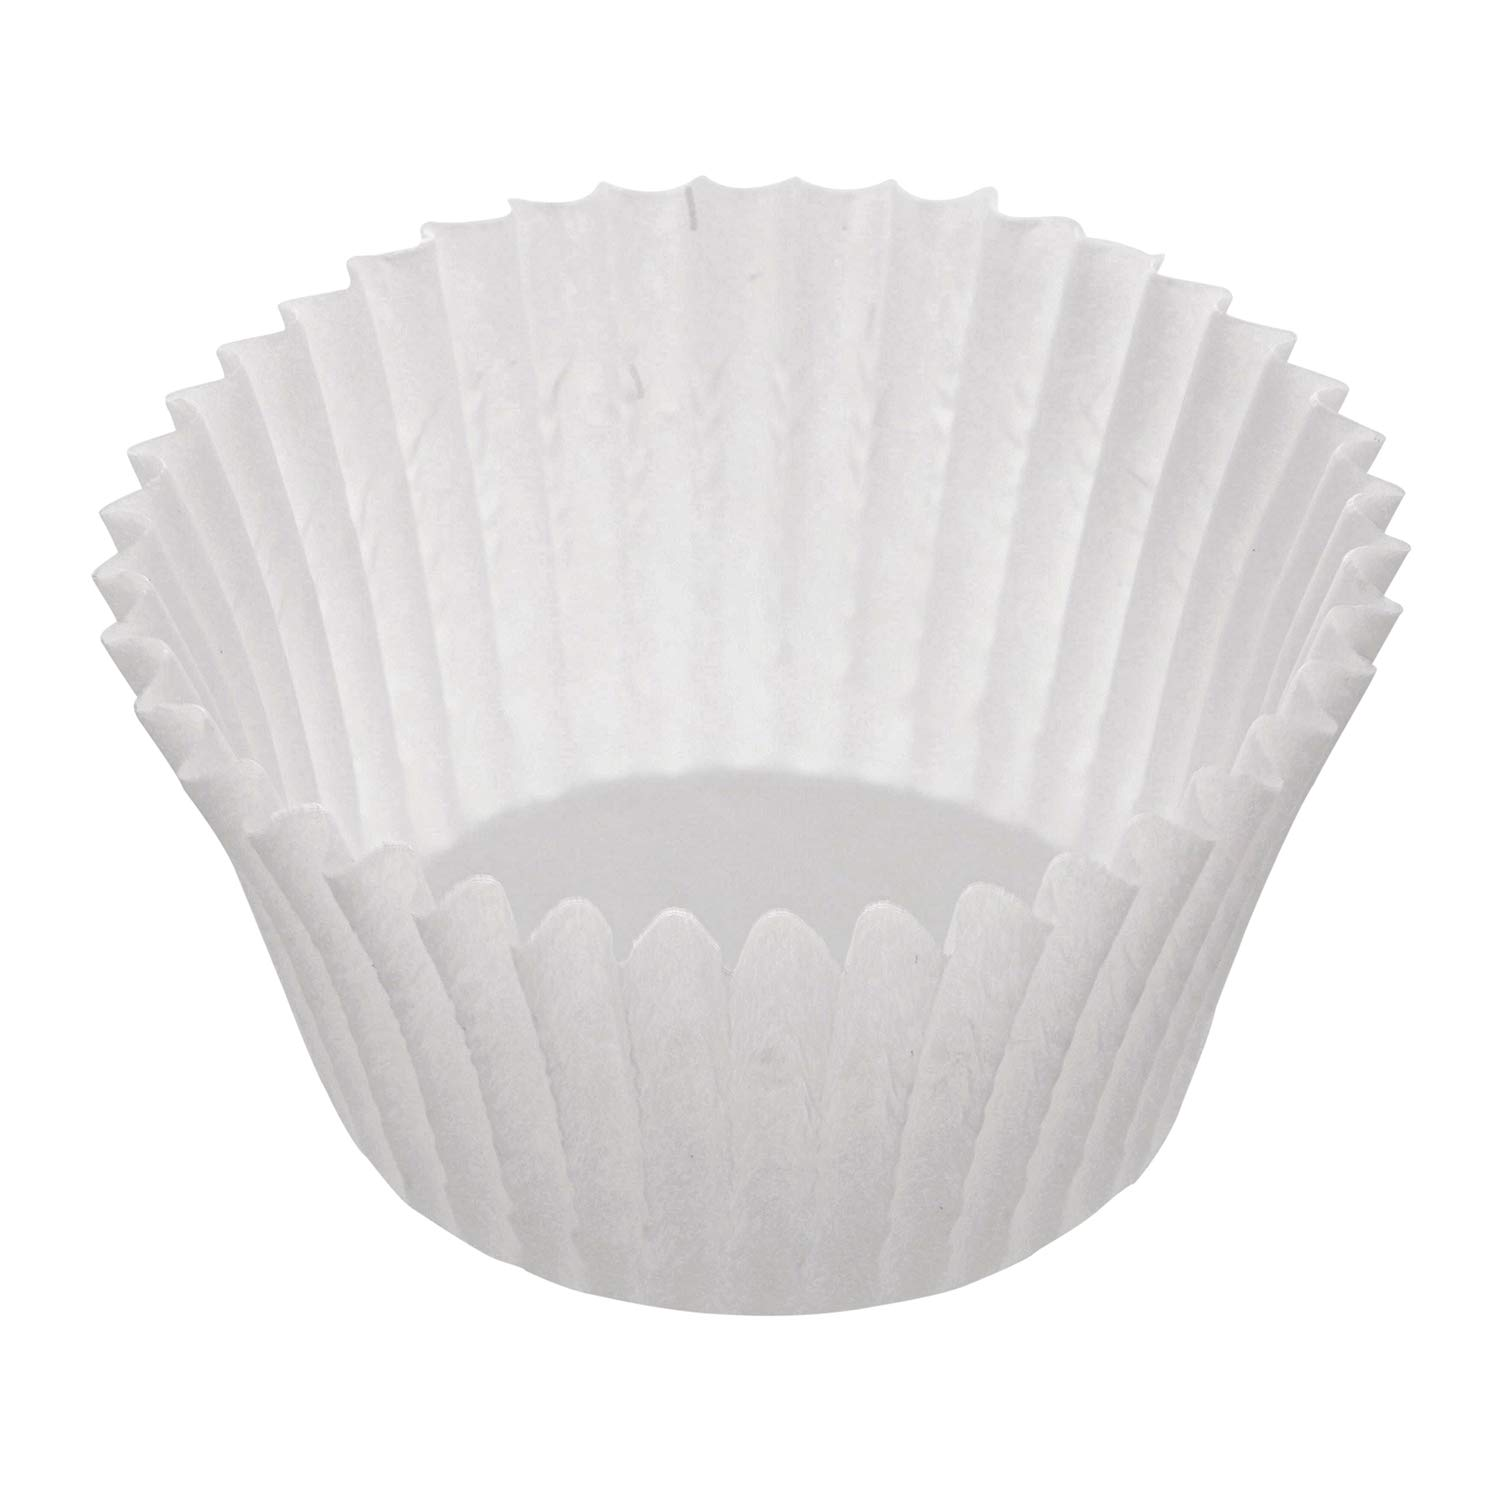 Royal 3 Inch Baking Cup, Case of 10,000